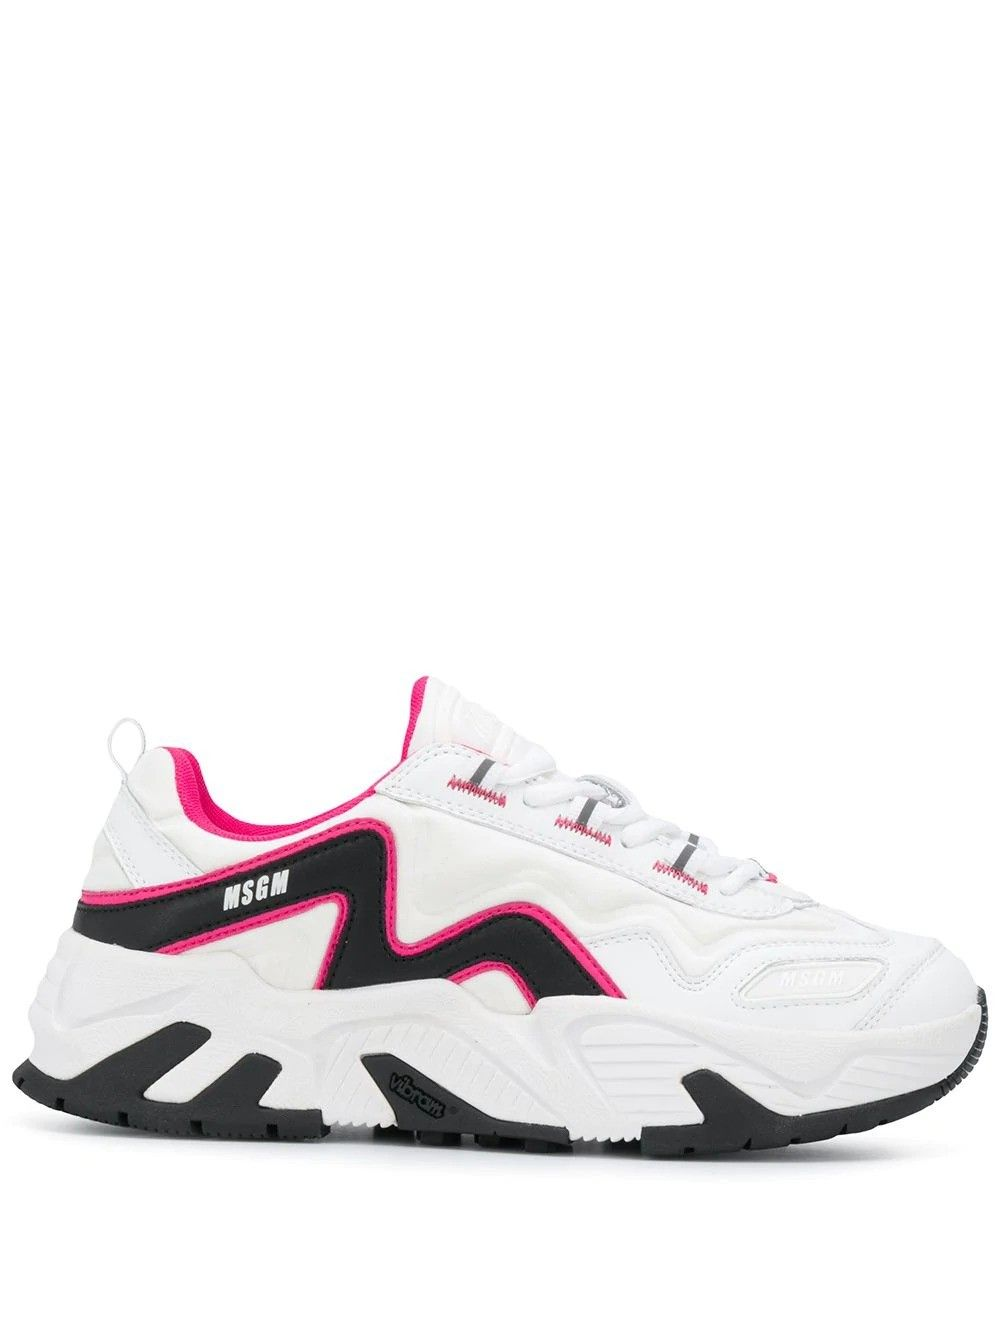 Msgm MSGM WOMEN'S WHITE LEATHER SNEAKERS